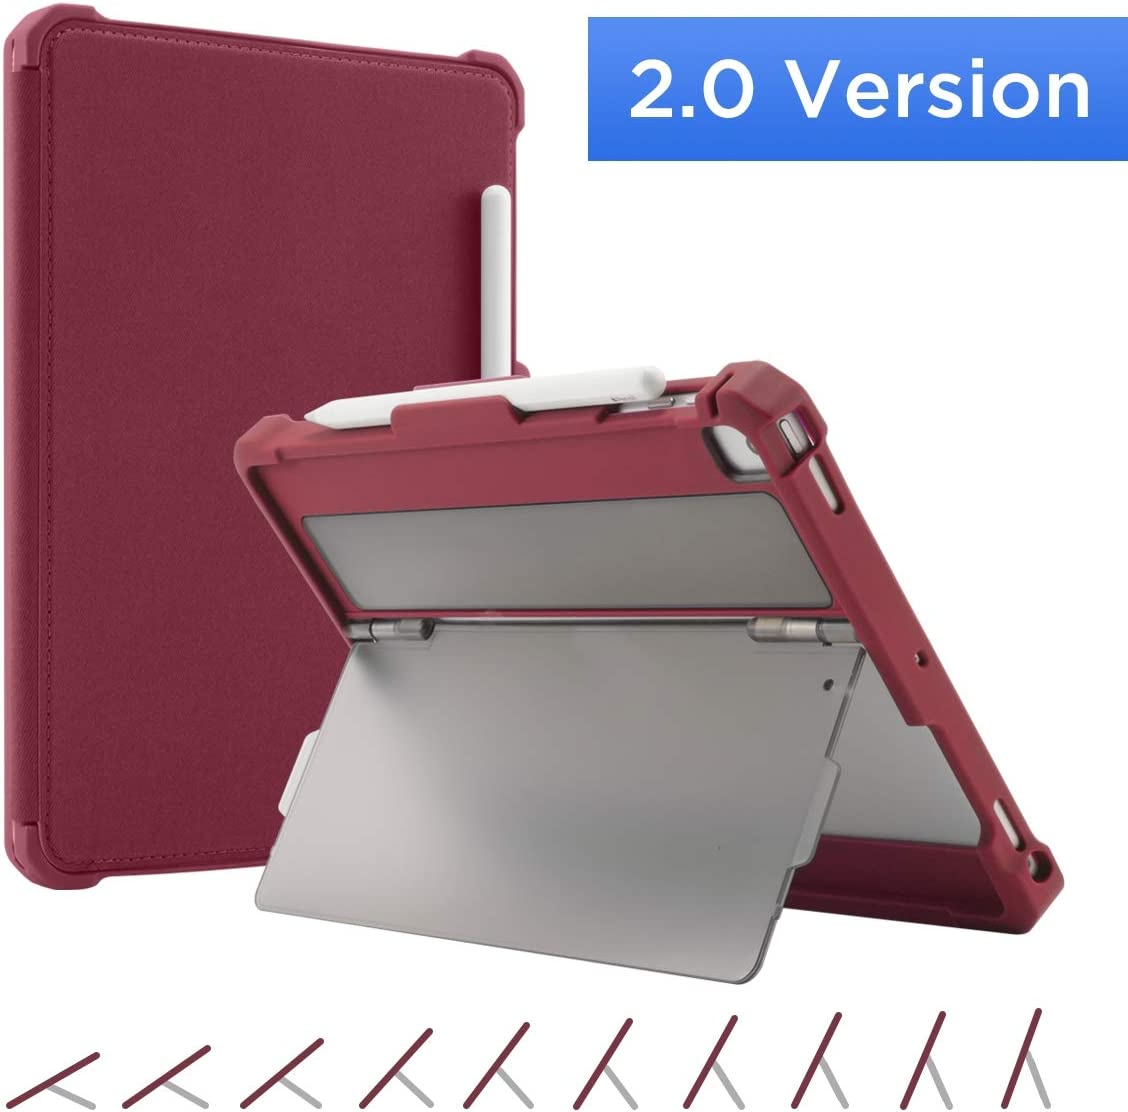 Maxjoy Case for 9.7 iPad 2018/2017, iPad Air 2/1 Case, iPad Pro 9.7 Case, Protective But Slim + Multi Angles Stand + Pencil Holder + Sleep/Wake Cover for iPad 9.7 inch 5th/6th Gen, [2.0 Version],Red